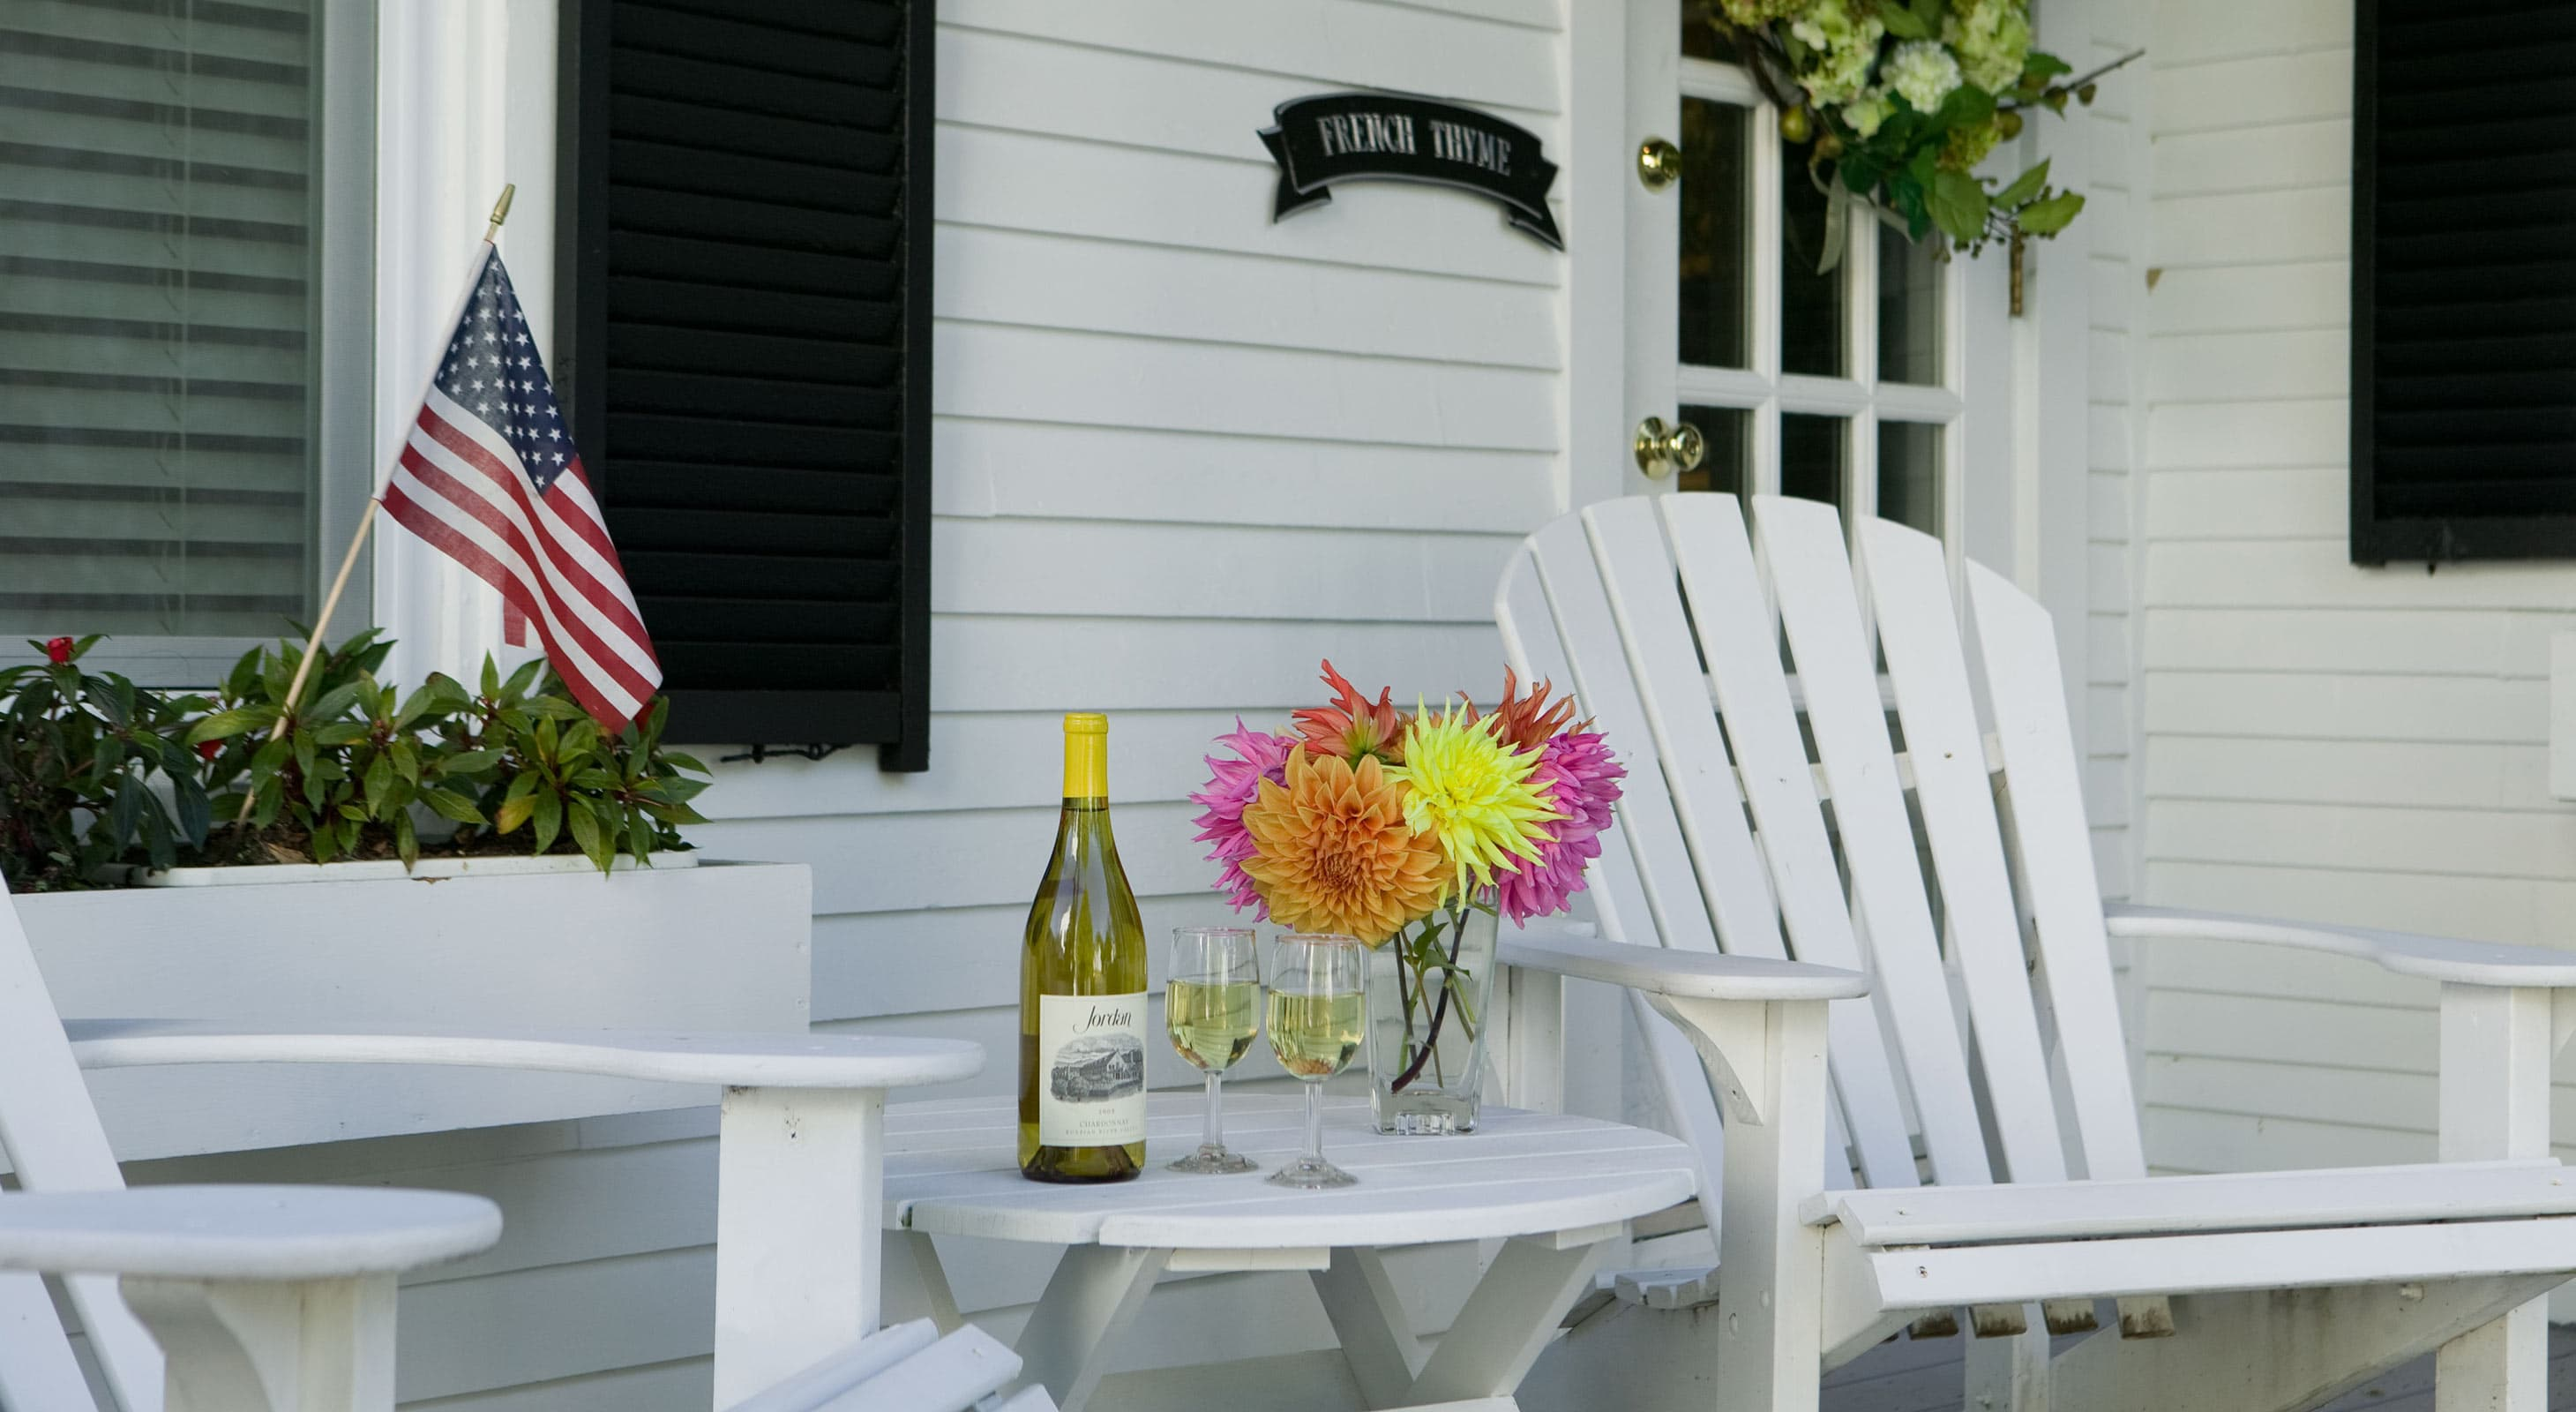 White wine with Adirondack chairs on patio